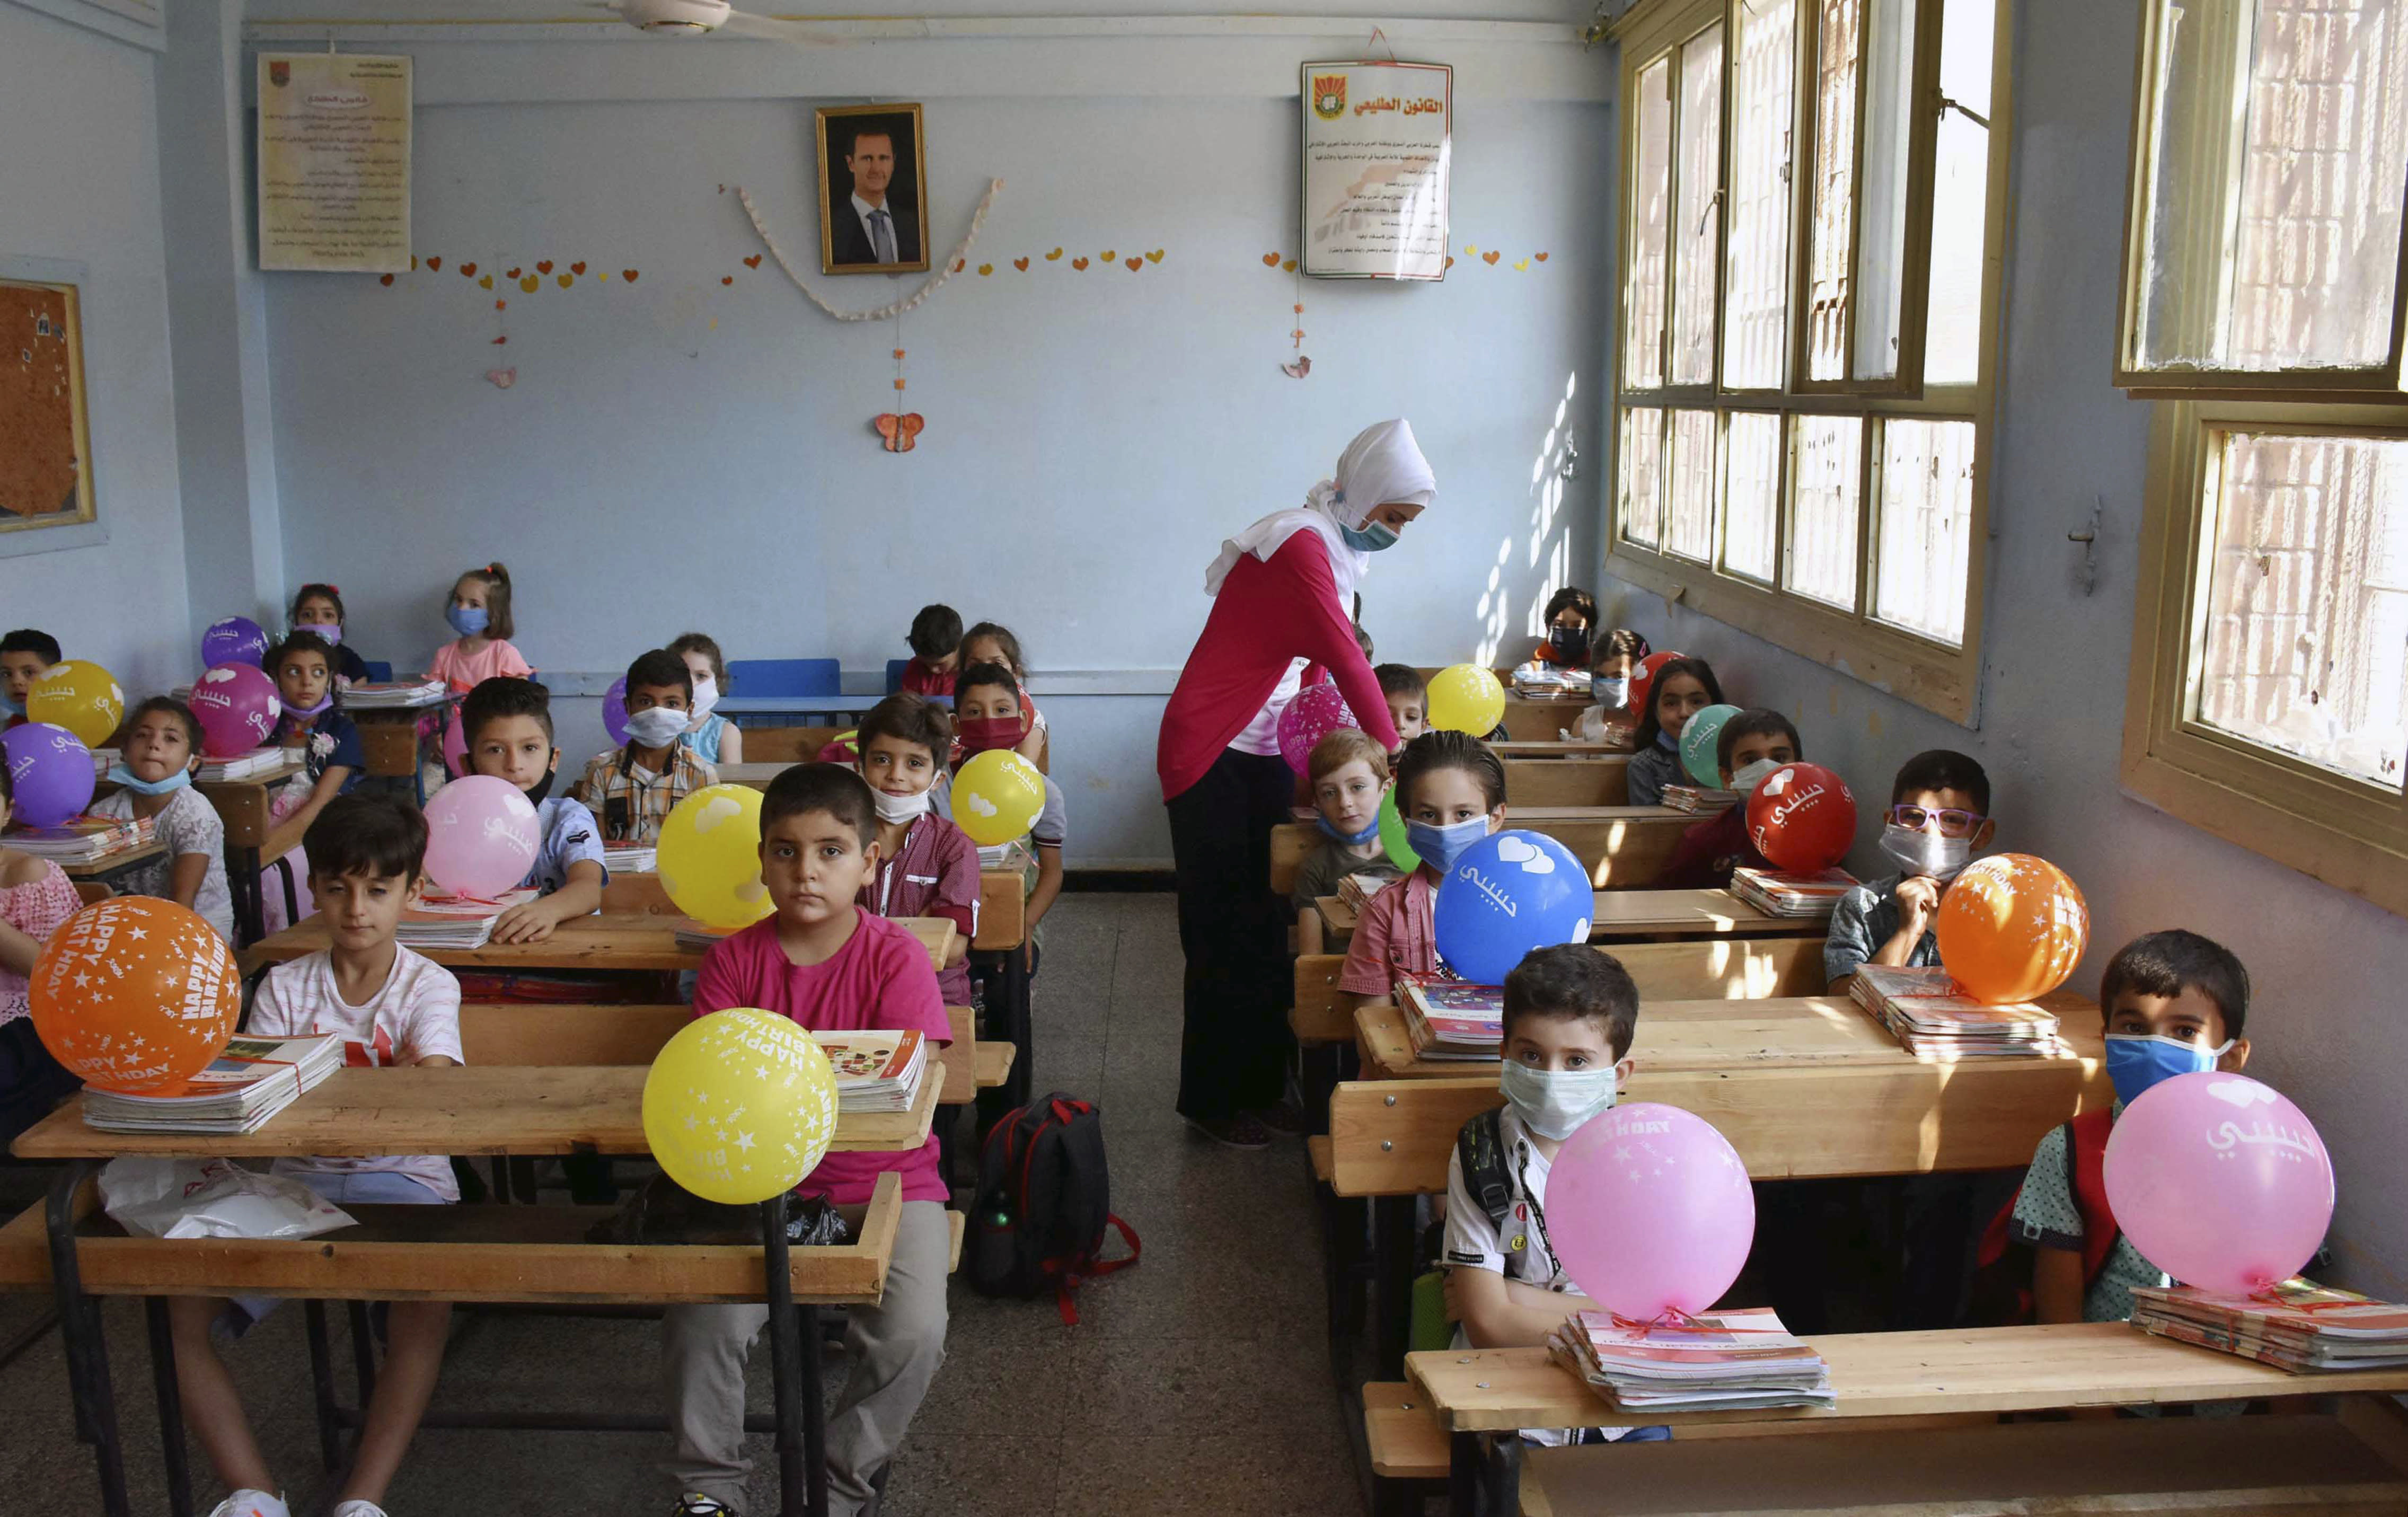 In this photo released by the Syrian official news agency SANA, students attend a lesson on their first day back at school, in Homs, Syria, Sunday, Sept. 13, 2020. More than 3 million students went to school in government-held areas around Syria Sunday marking the first school day amid strict measures to prevent the spread of coronavirus. (SANA via AP)